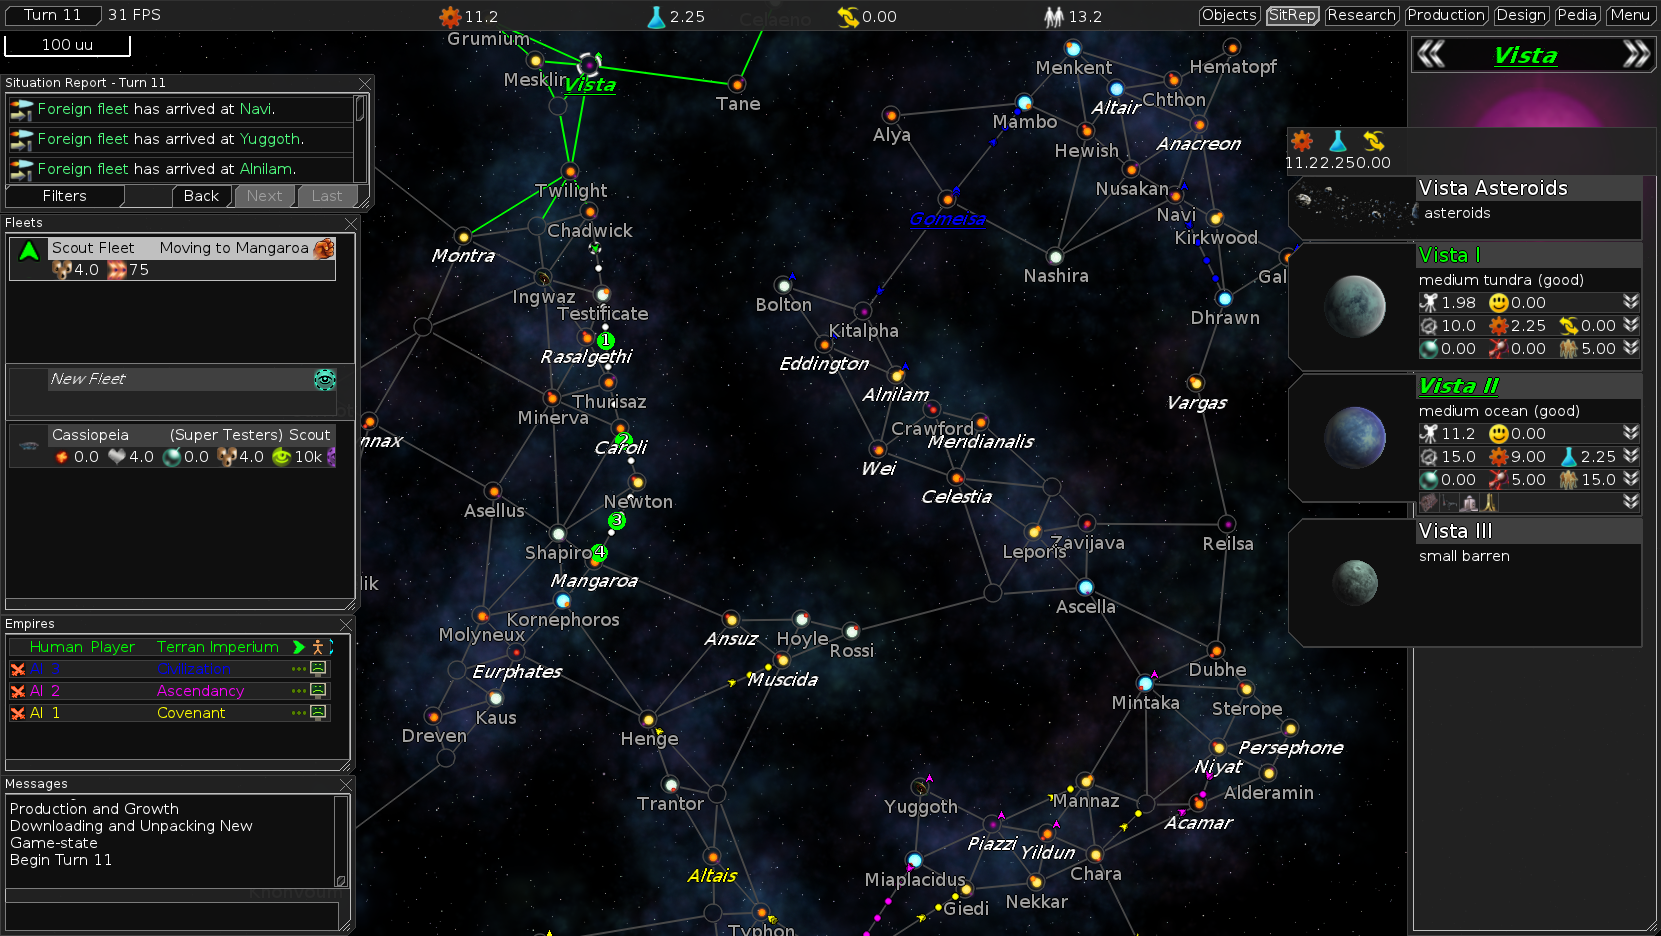 FreeOrion_GalaxyMap_SVN5355.png